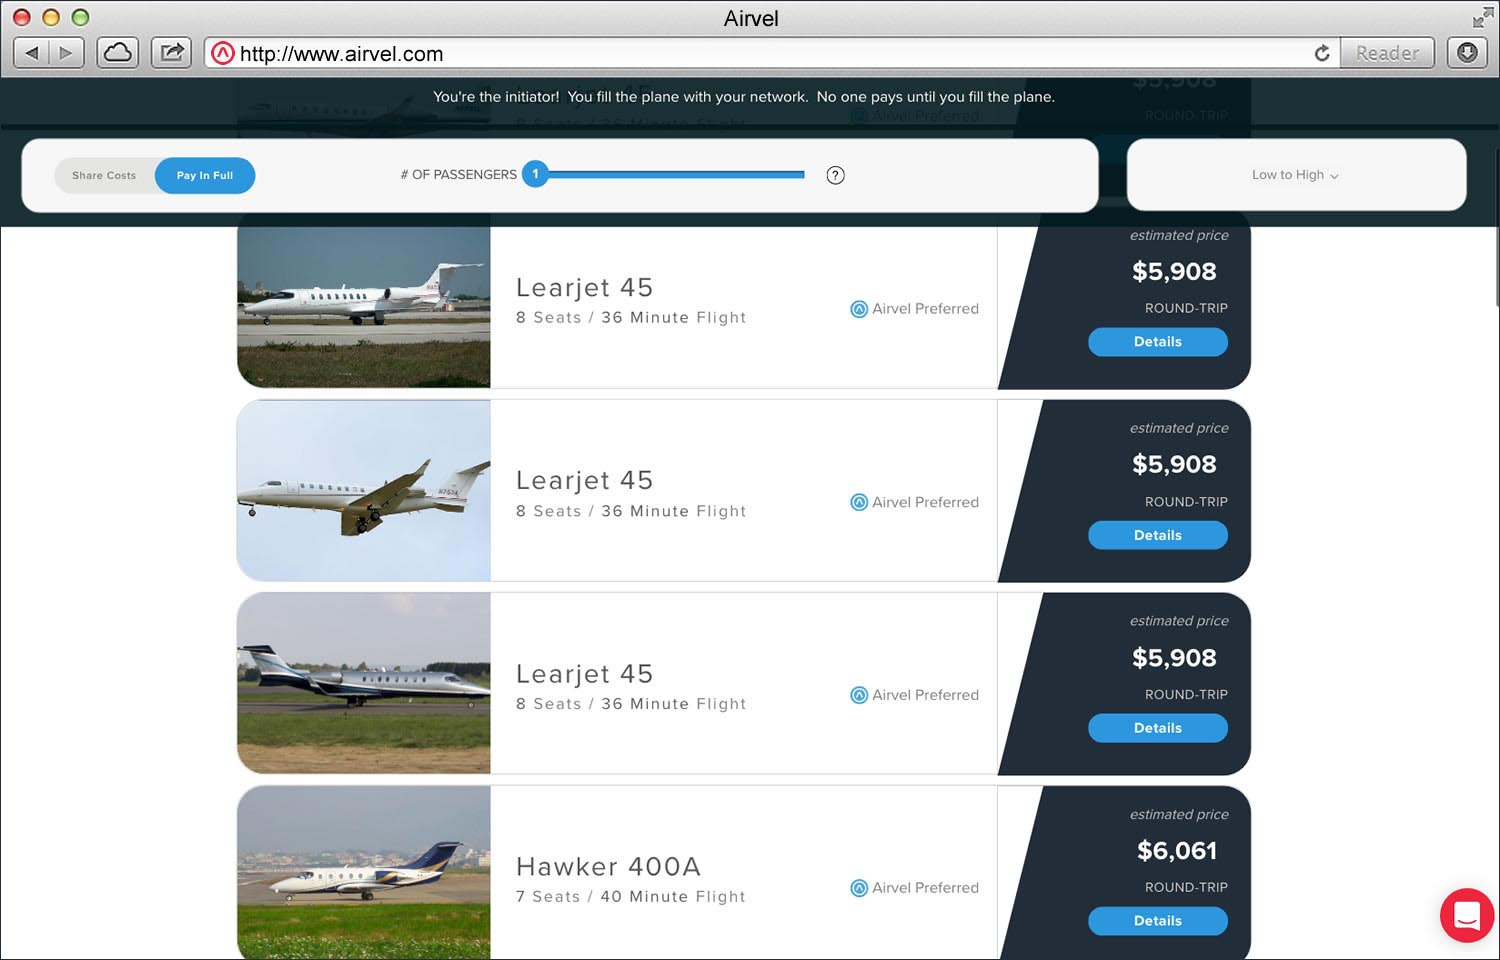 Airvel_private_air_charters_step2.jpg